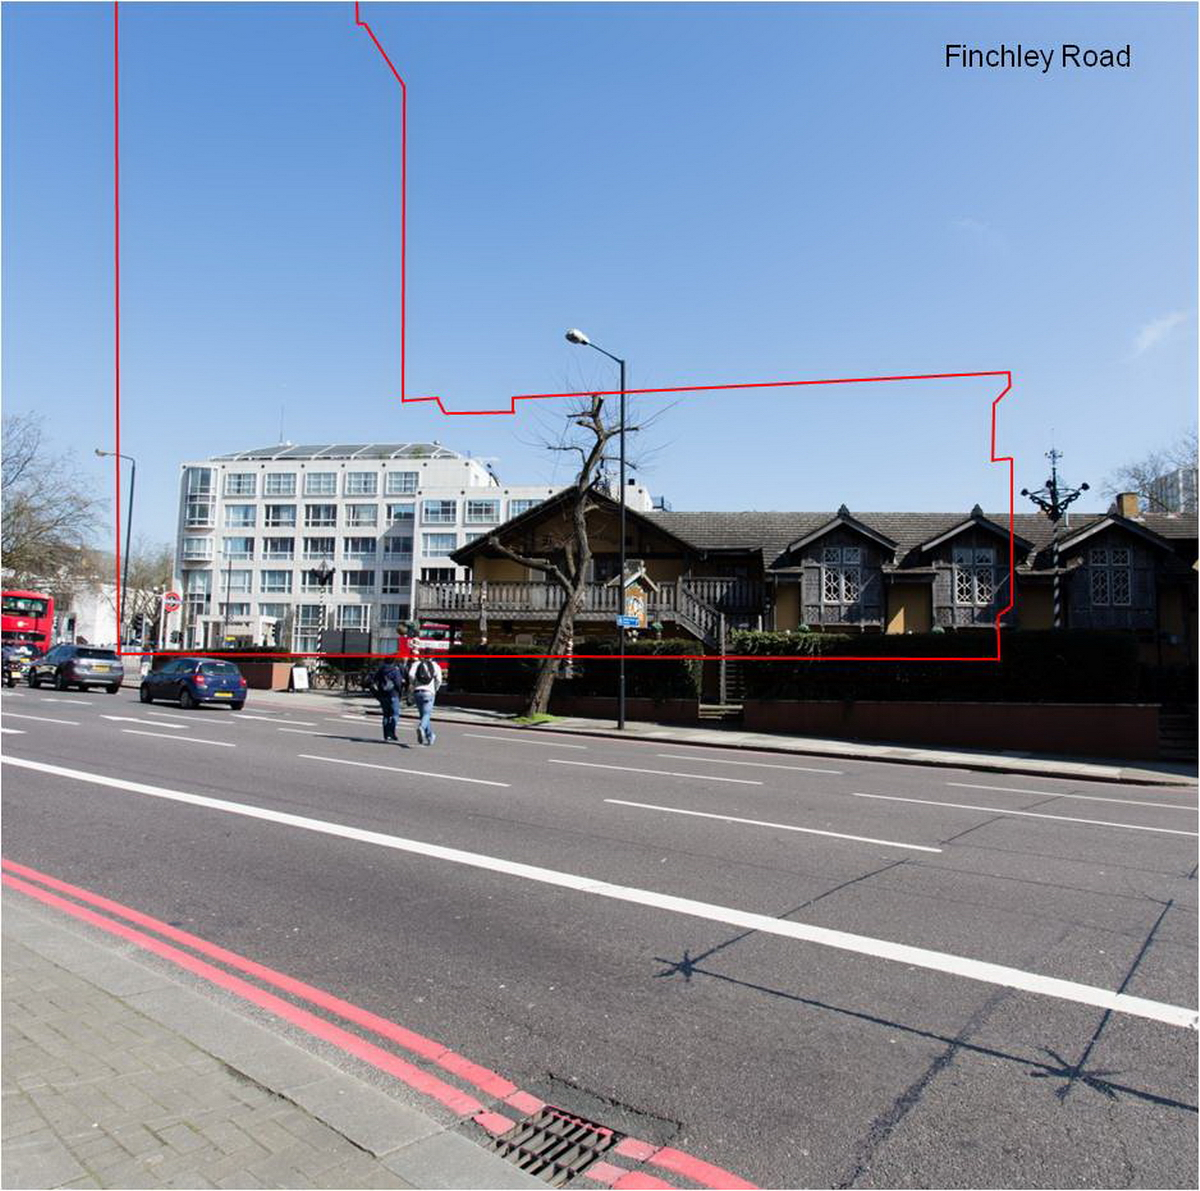 11618-H4-Swiss cottage-11618-H4-Swiss cottage-1 Finchley Road Red Line.jpg